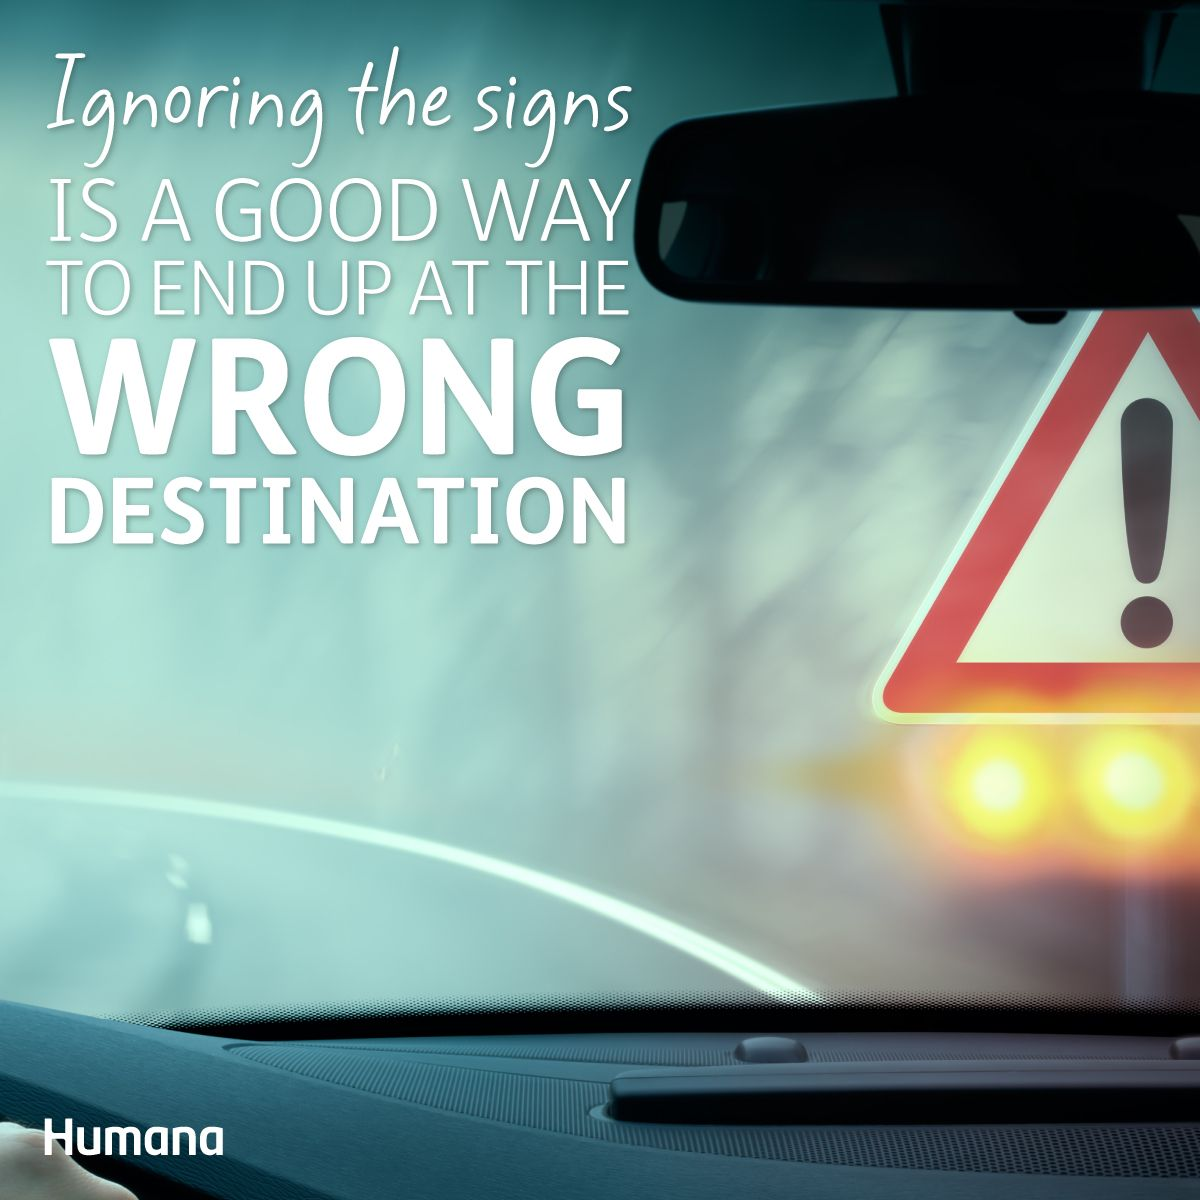 Ignoring the signs is a good way to end up at the wrong